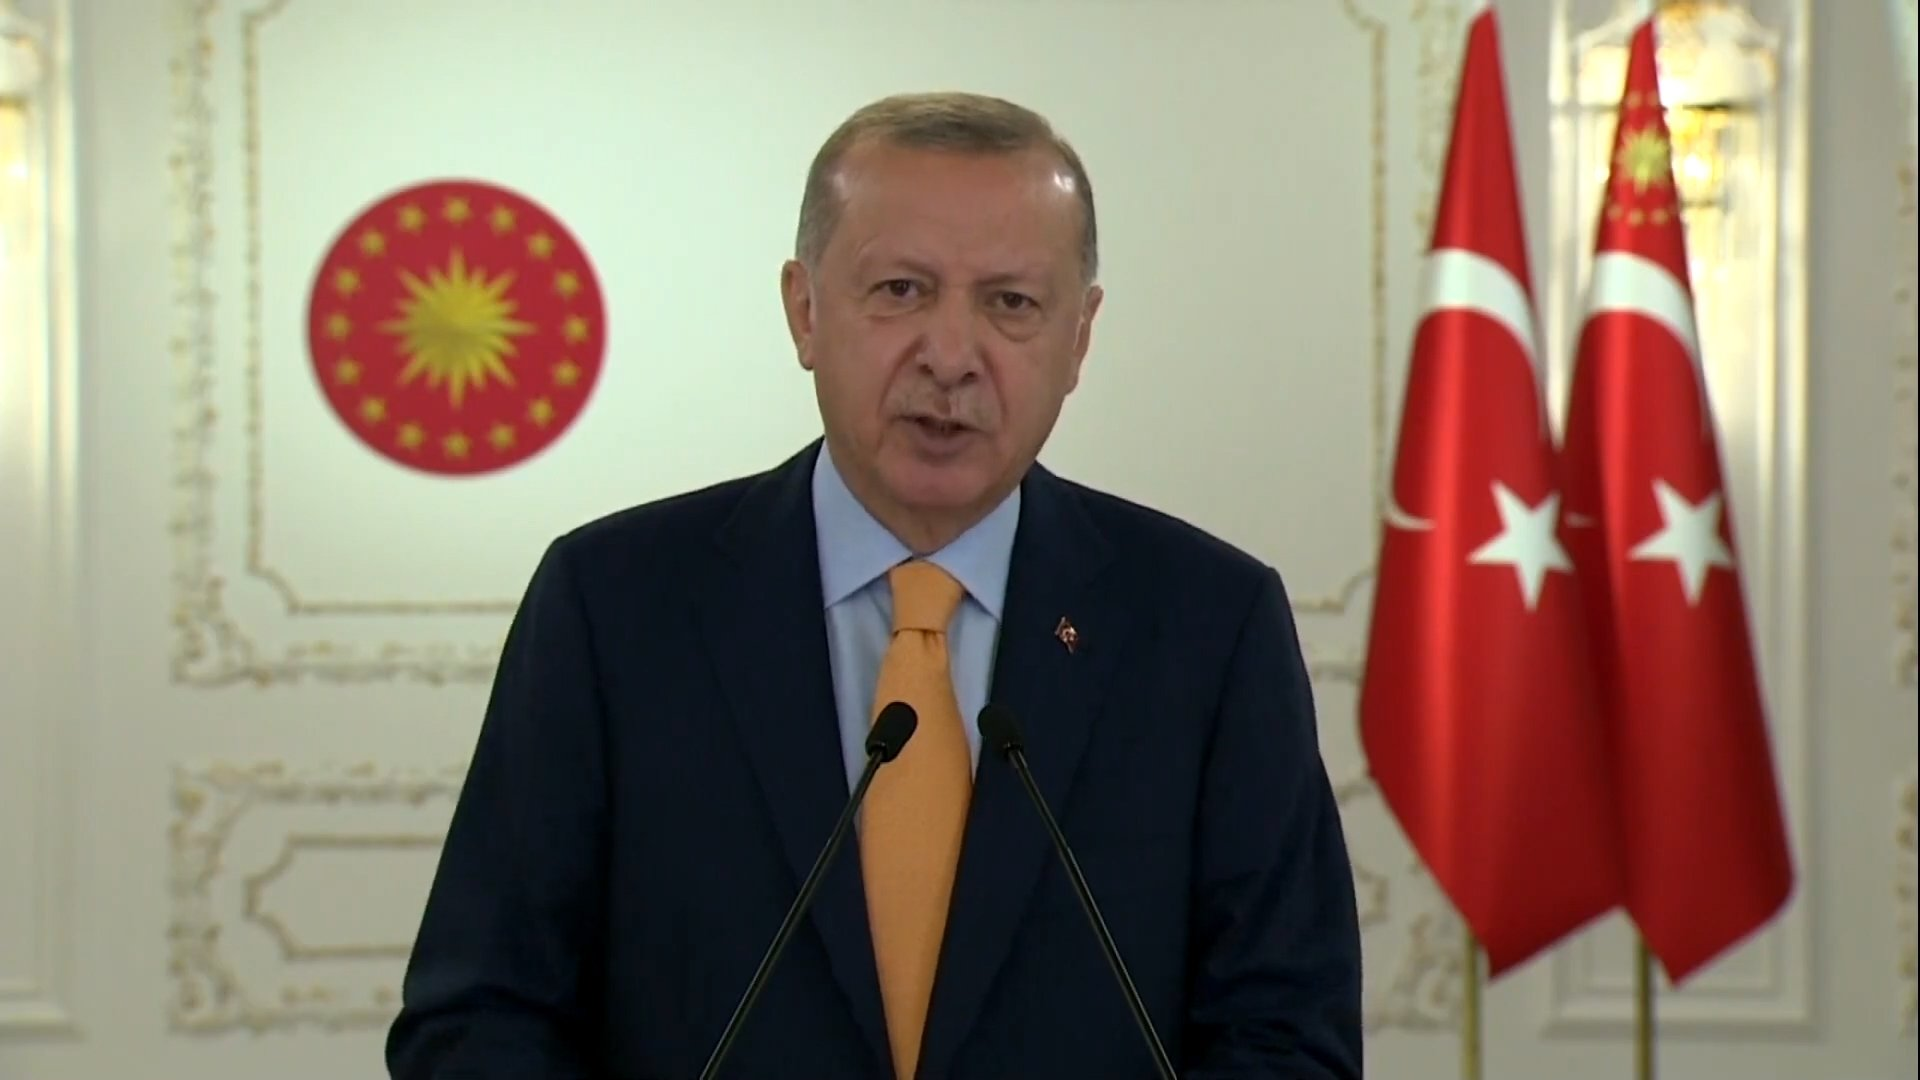 Turkey regrets Guterres's call for universal cease-fire failed, Erdoğan  says at UNGA | Daily Sabah